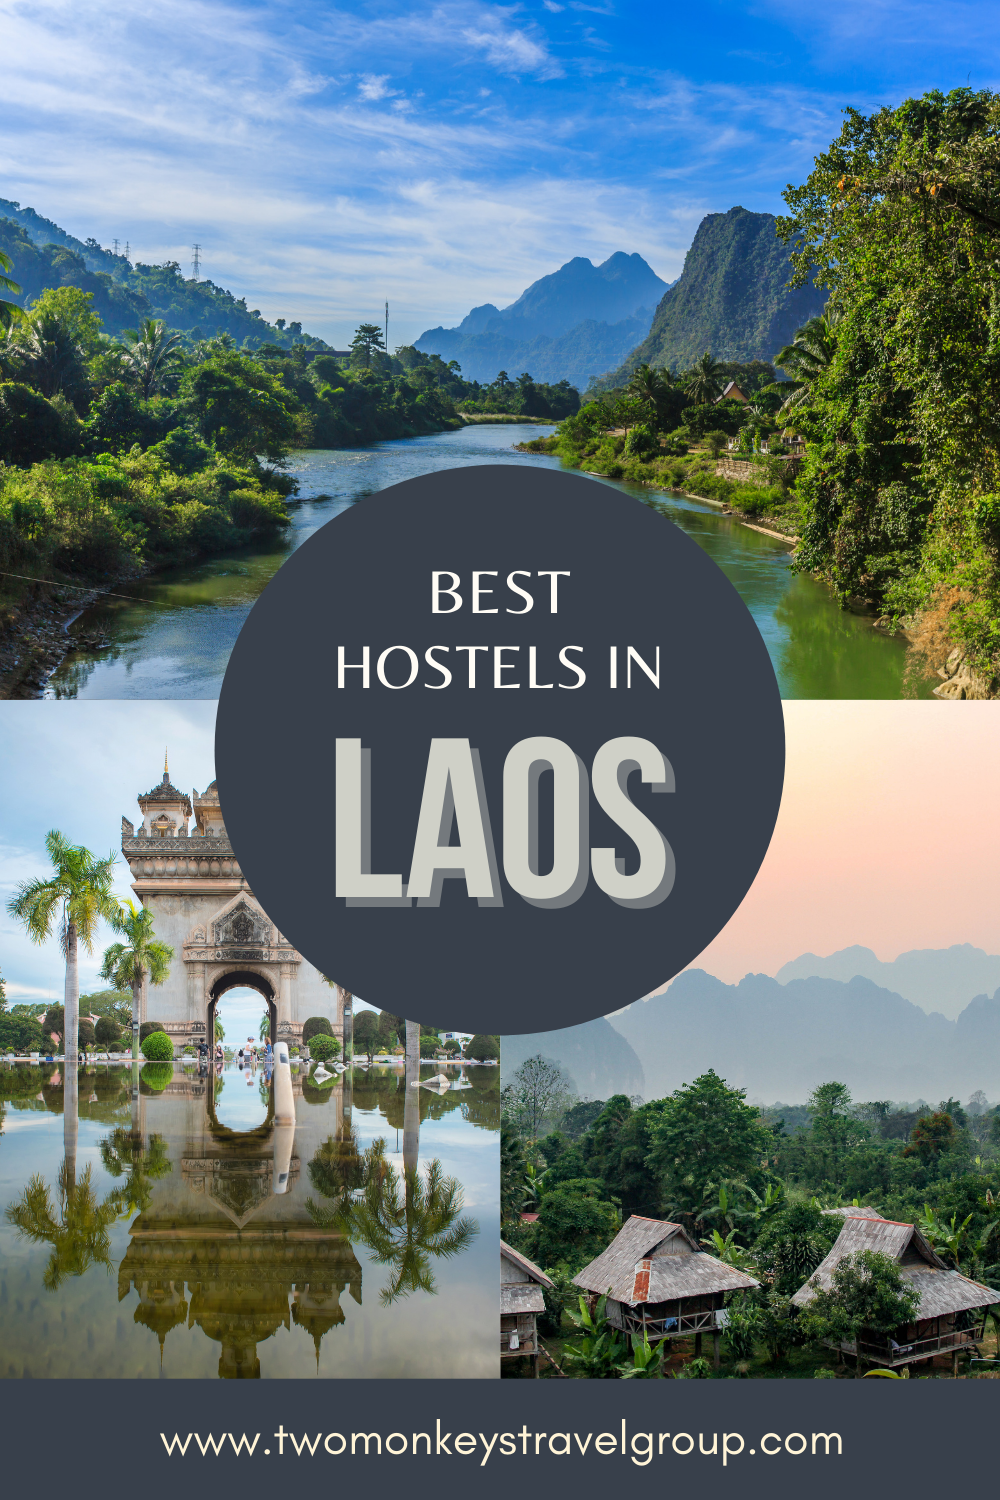 List of the Best Hostels in Laos4